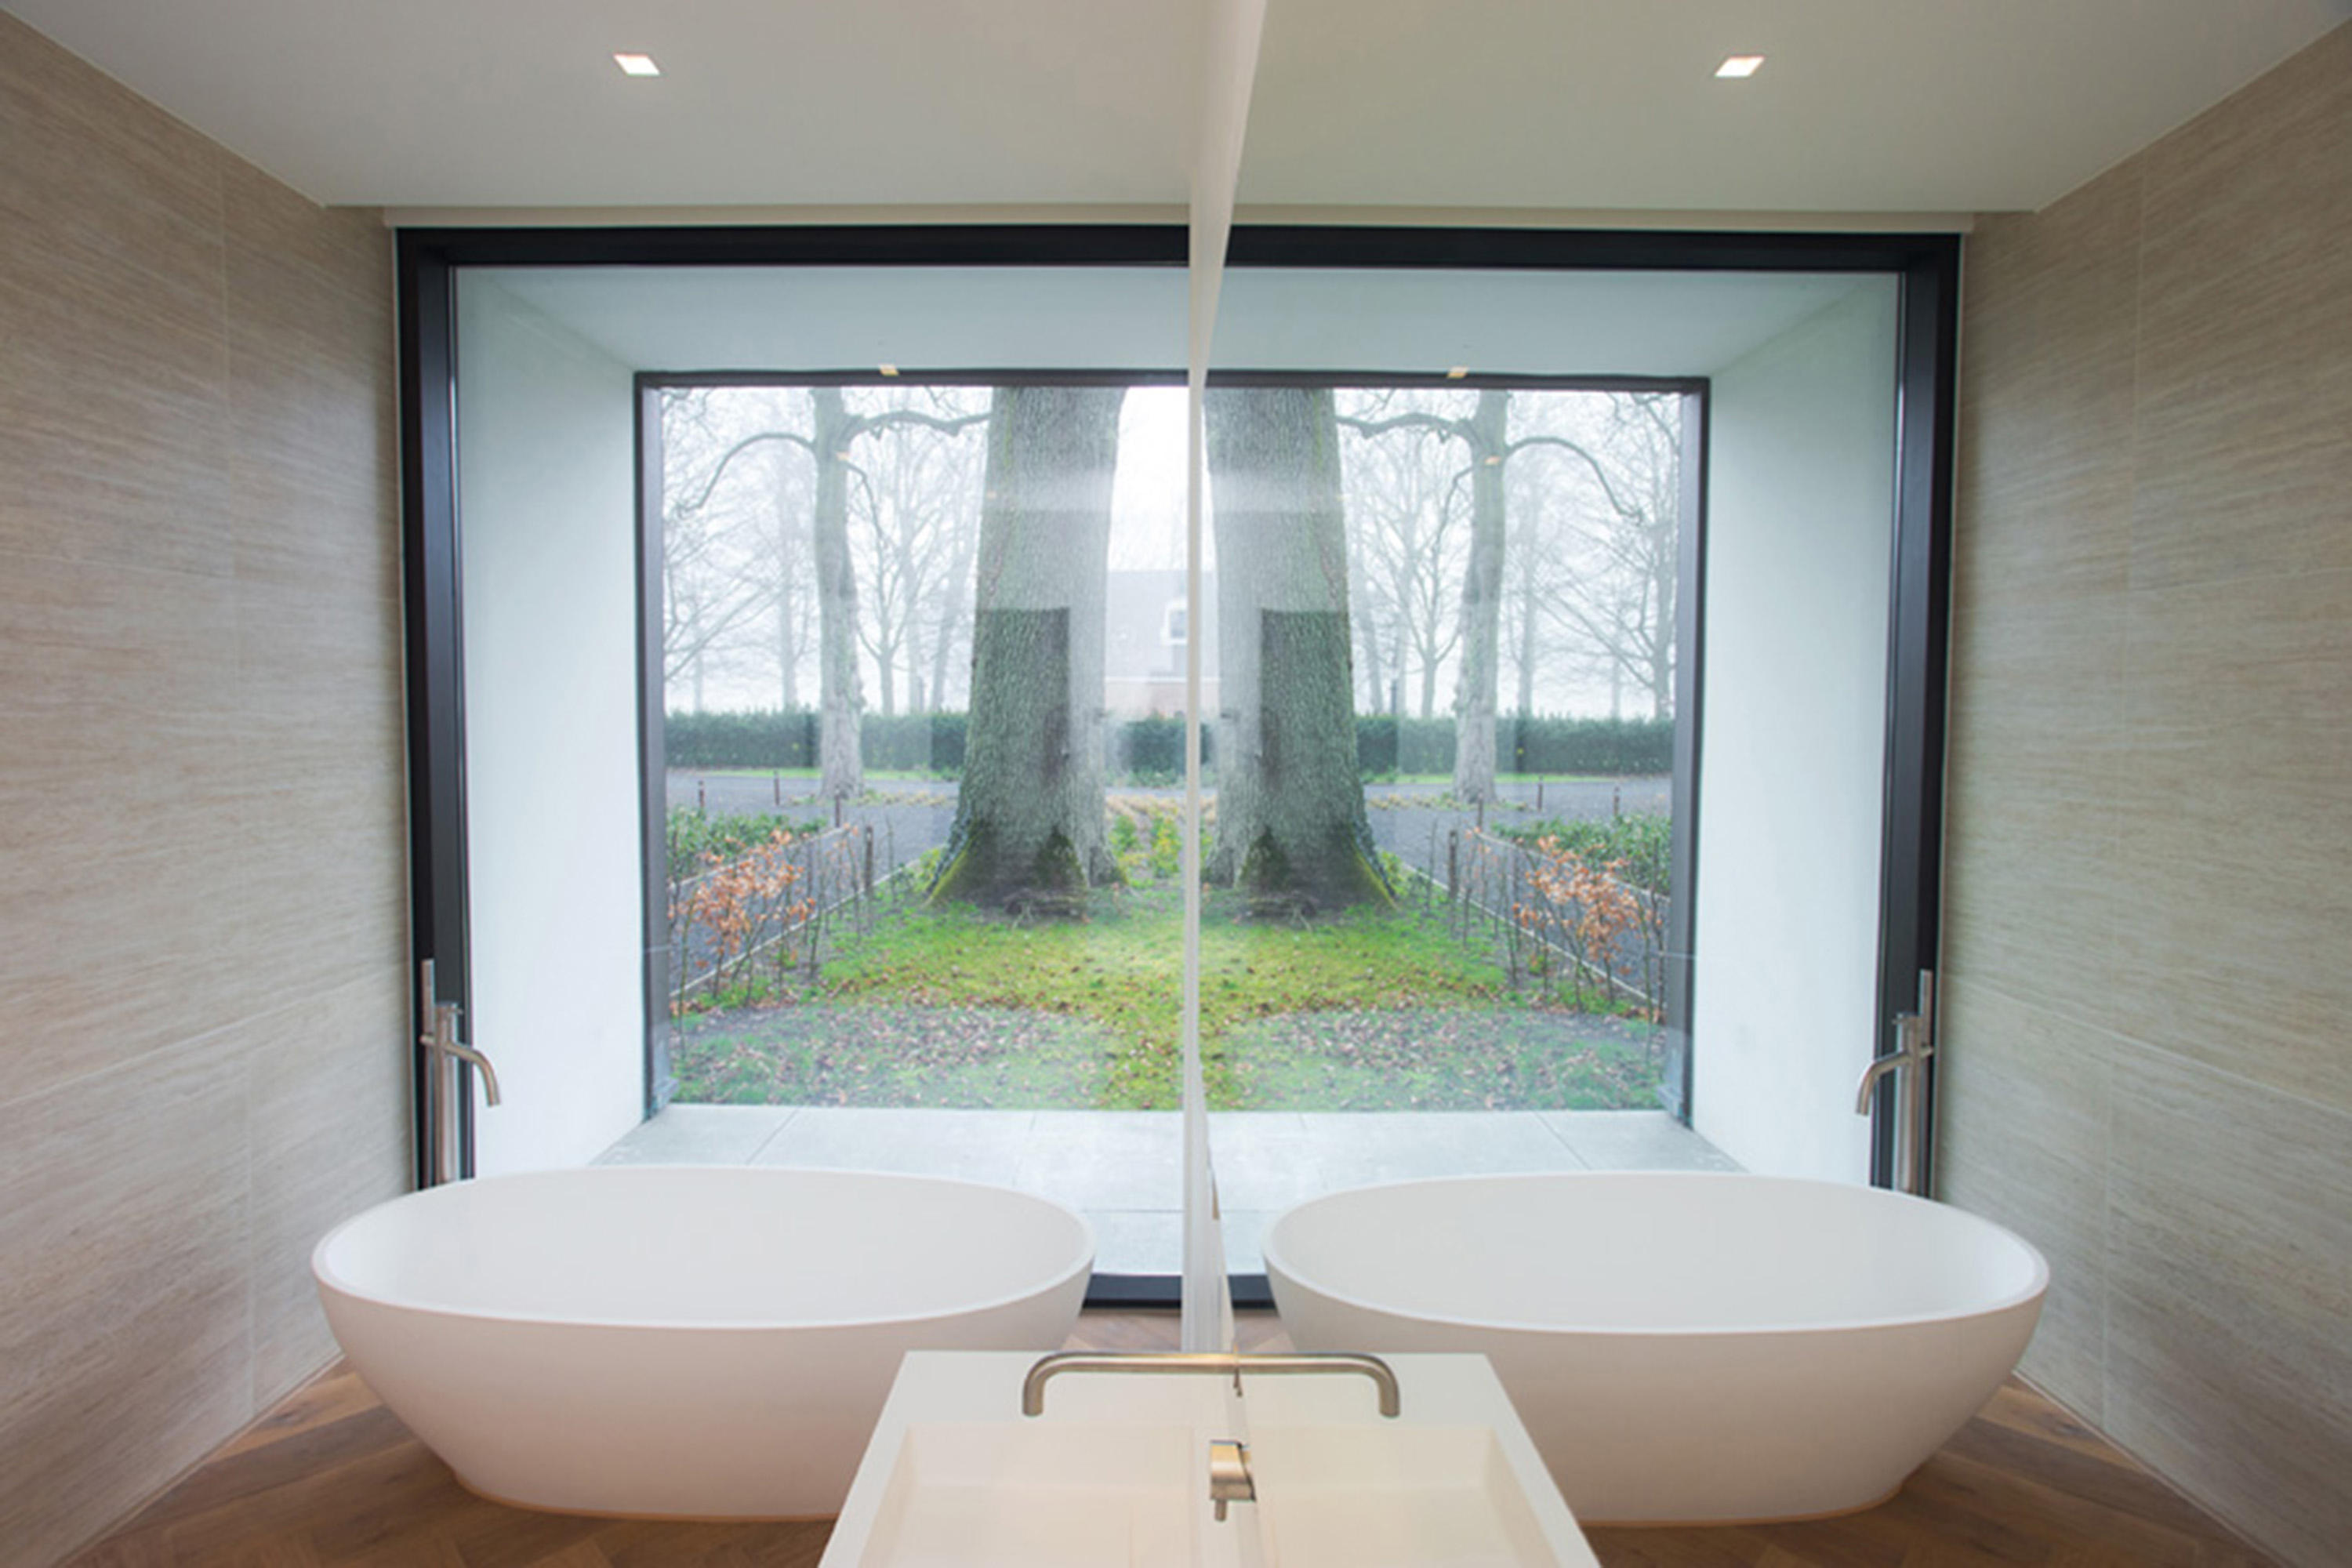 ATLANTIS | FREE STANDING BATHTUB - Bathtubs from COCOON | Architonic